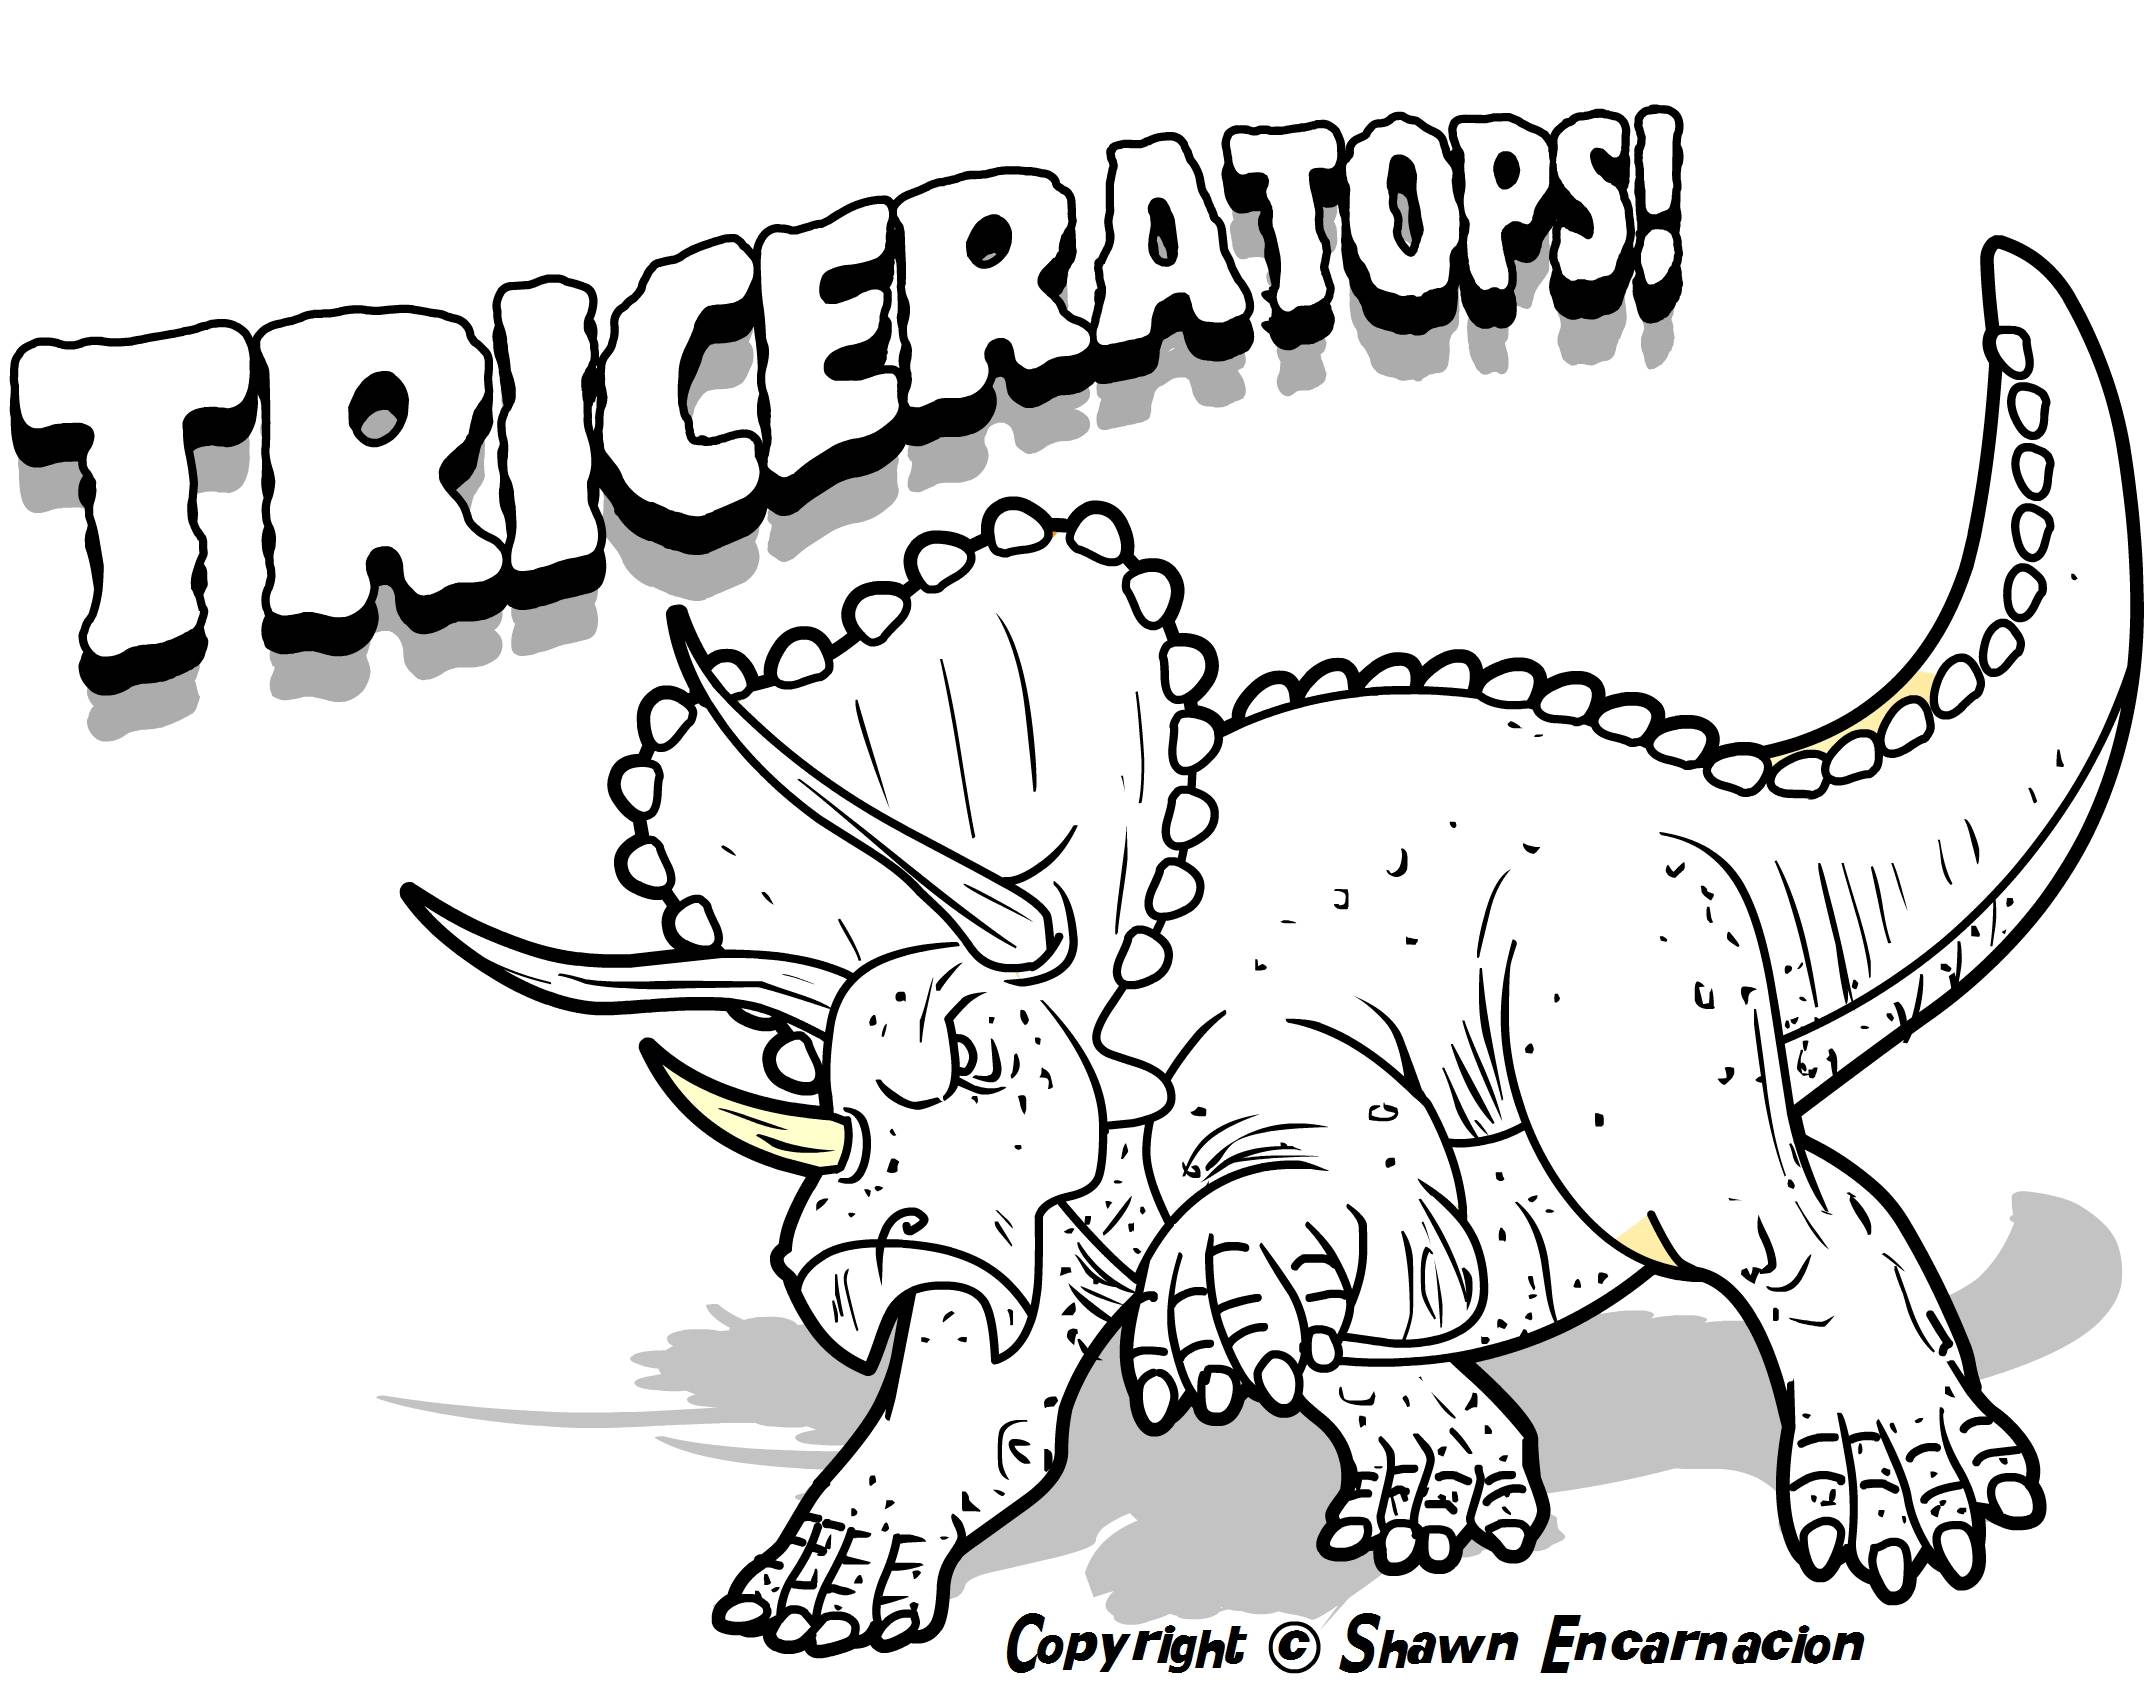 Di dinosaur coloring pages for toddlers - Free Printable Dinosaur Coloring Pages Image 4 Dinosaurs Coloring